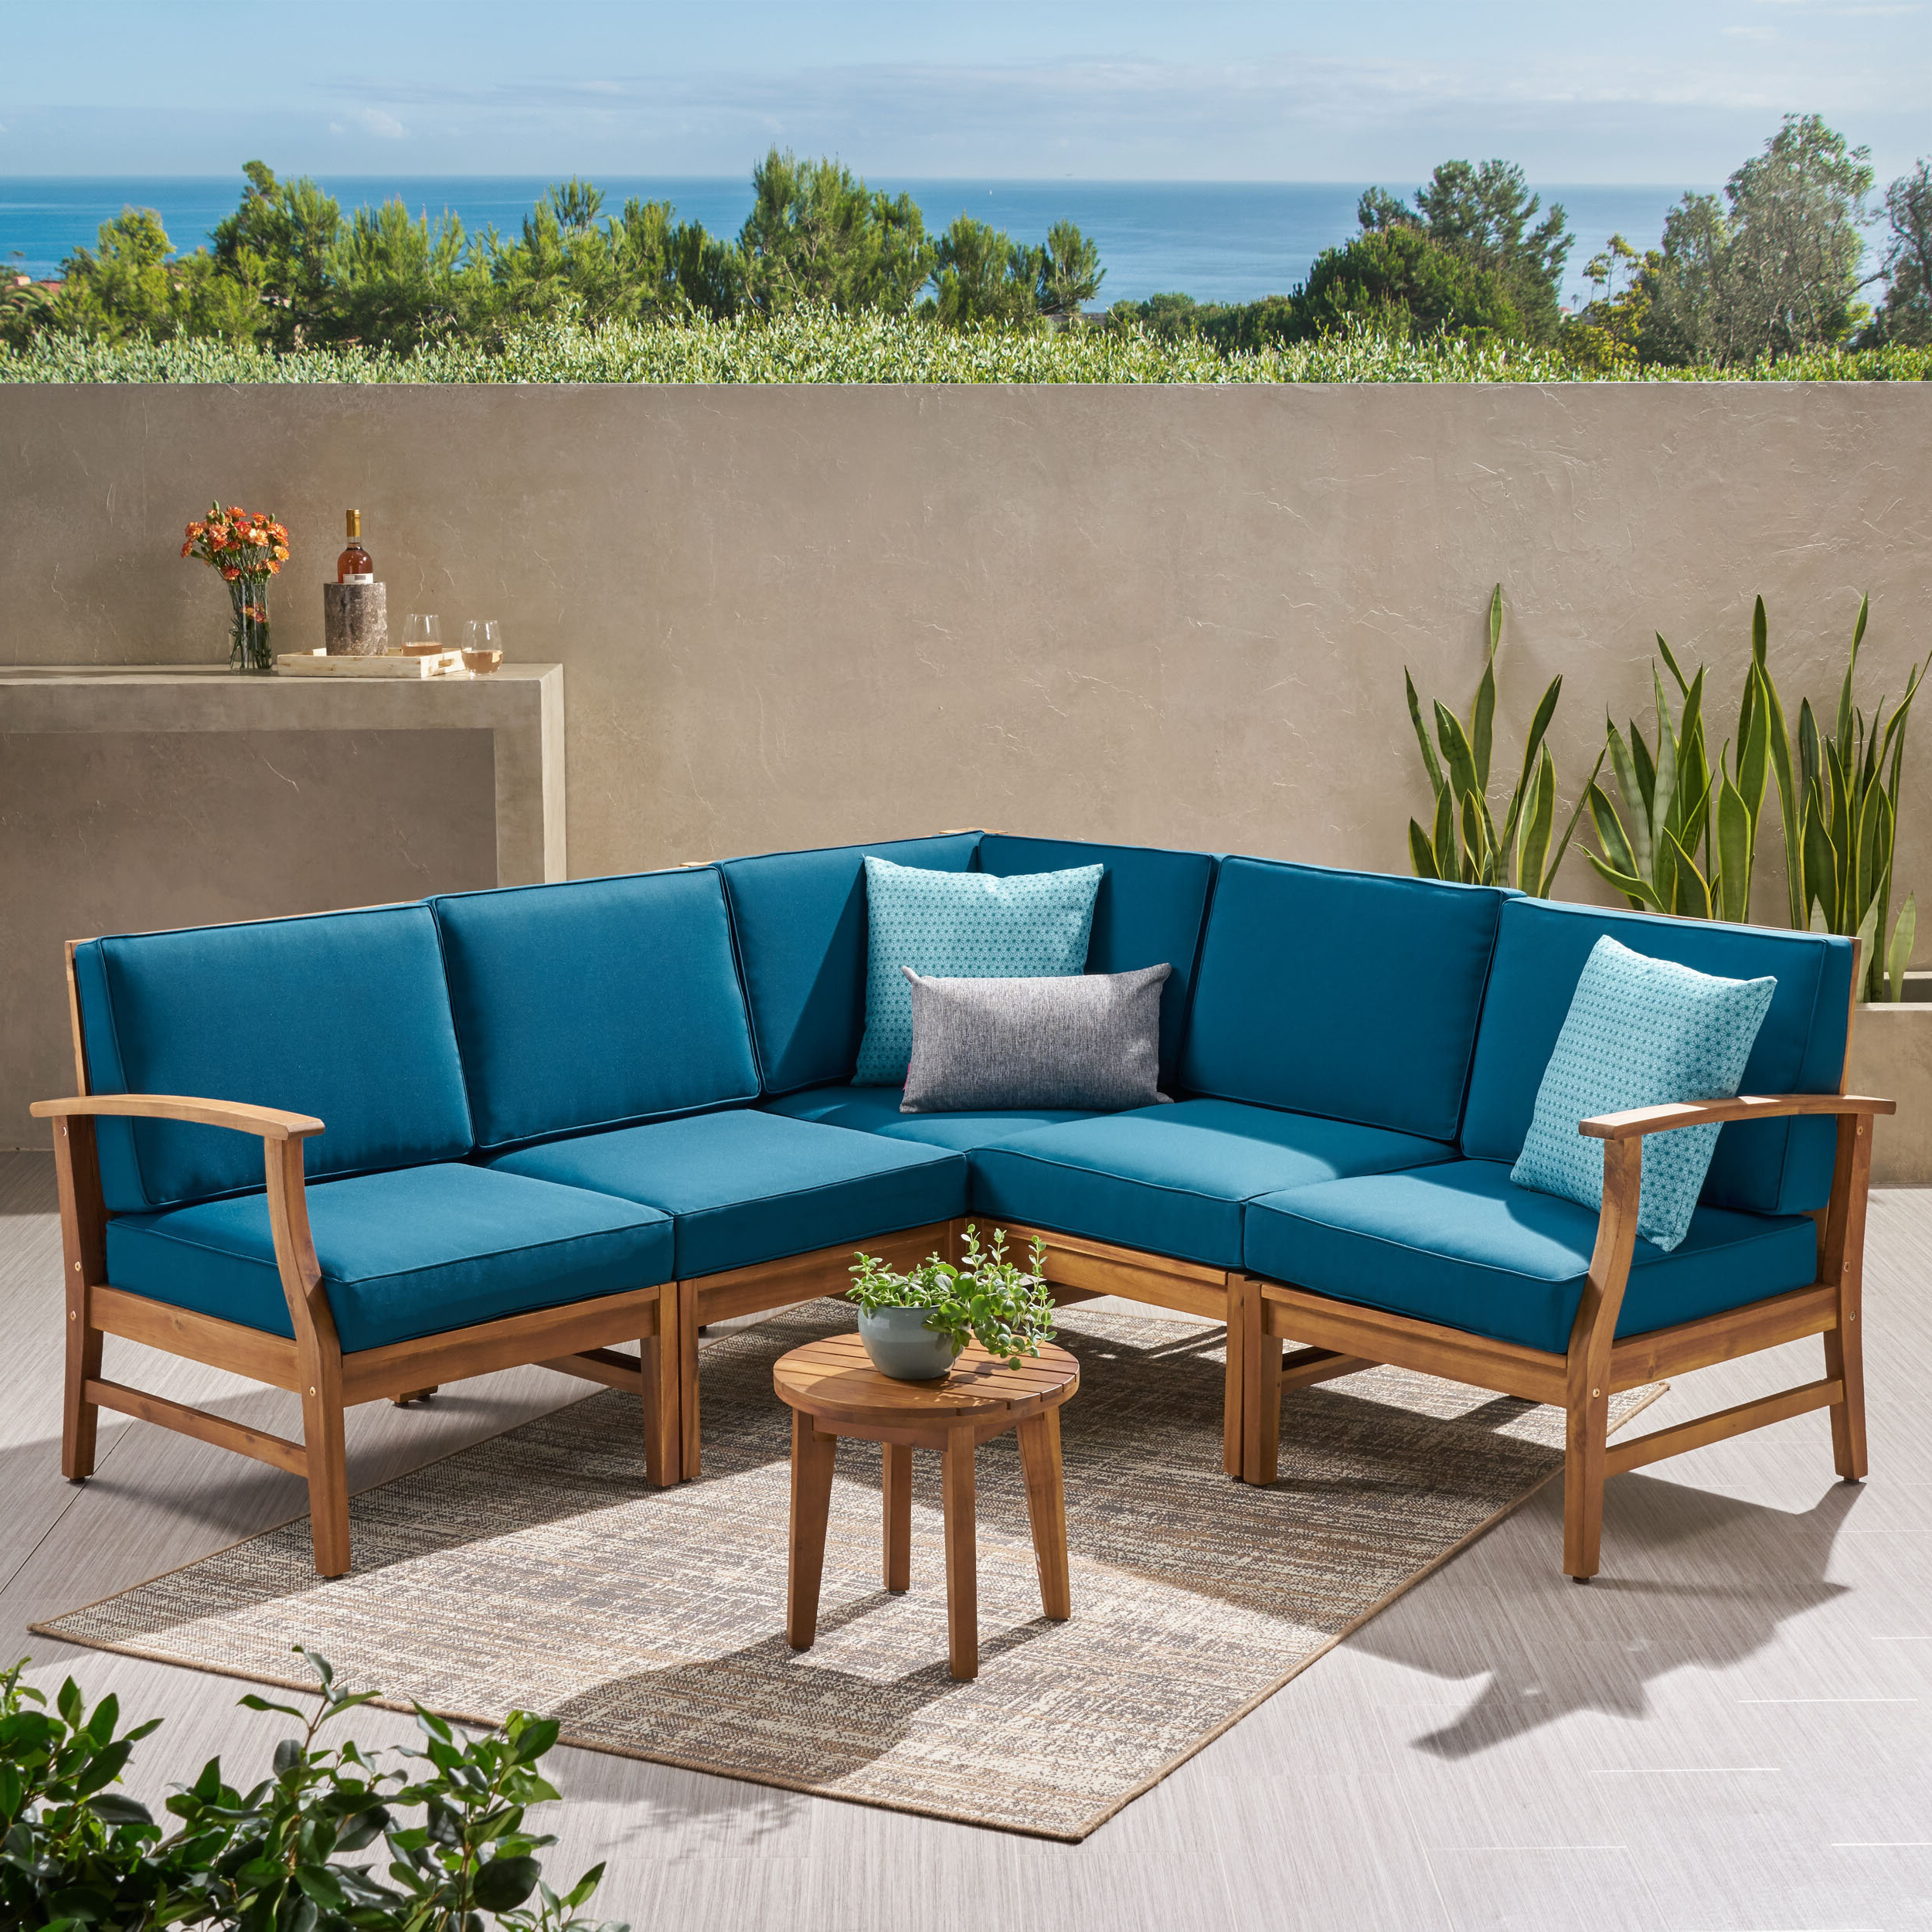 Jamilla Teak Patio Sofas With Cushion Pertaining To Preferred Mistana Antonia Teak Patio Sectional With Cushions (View 8 of 25)